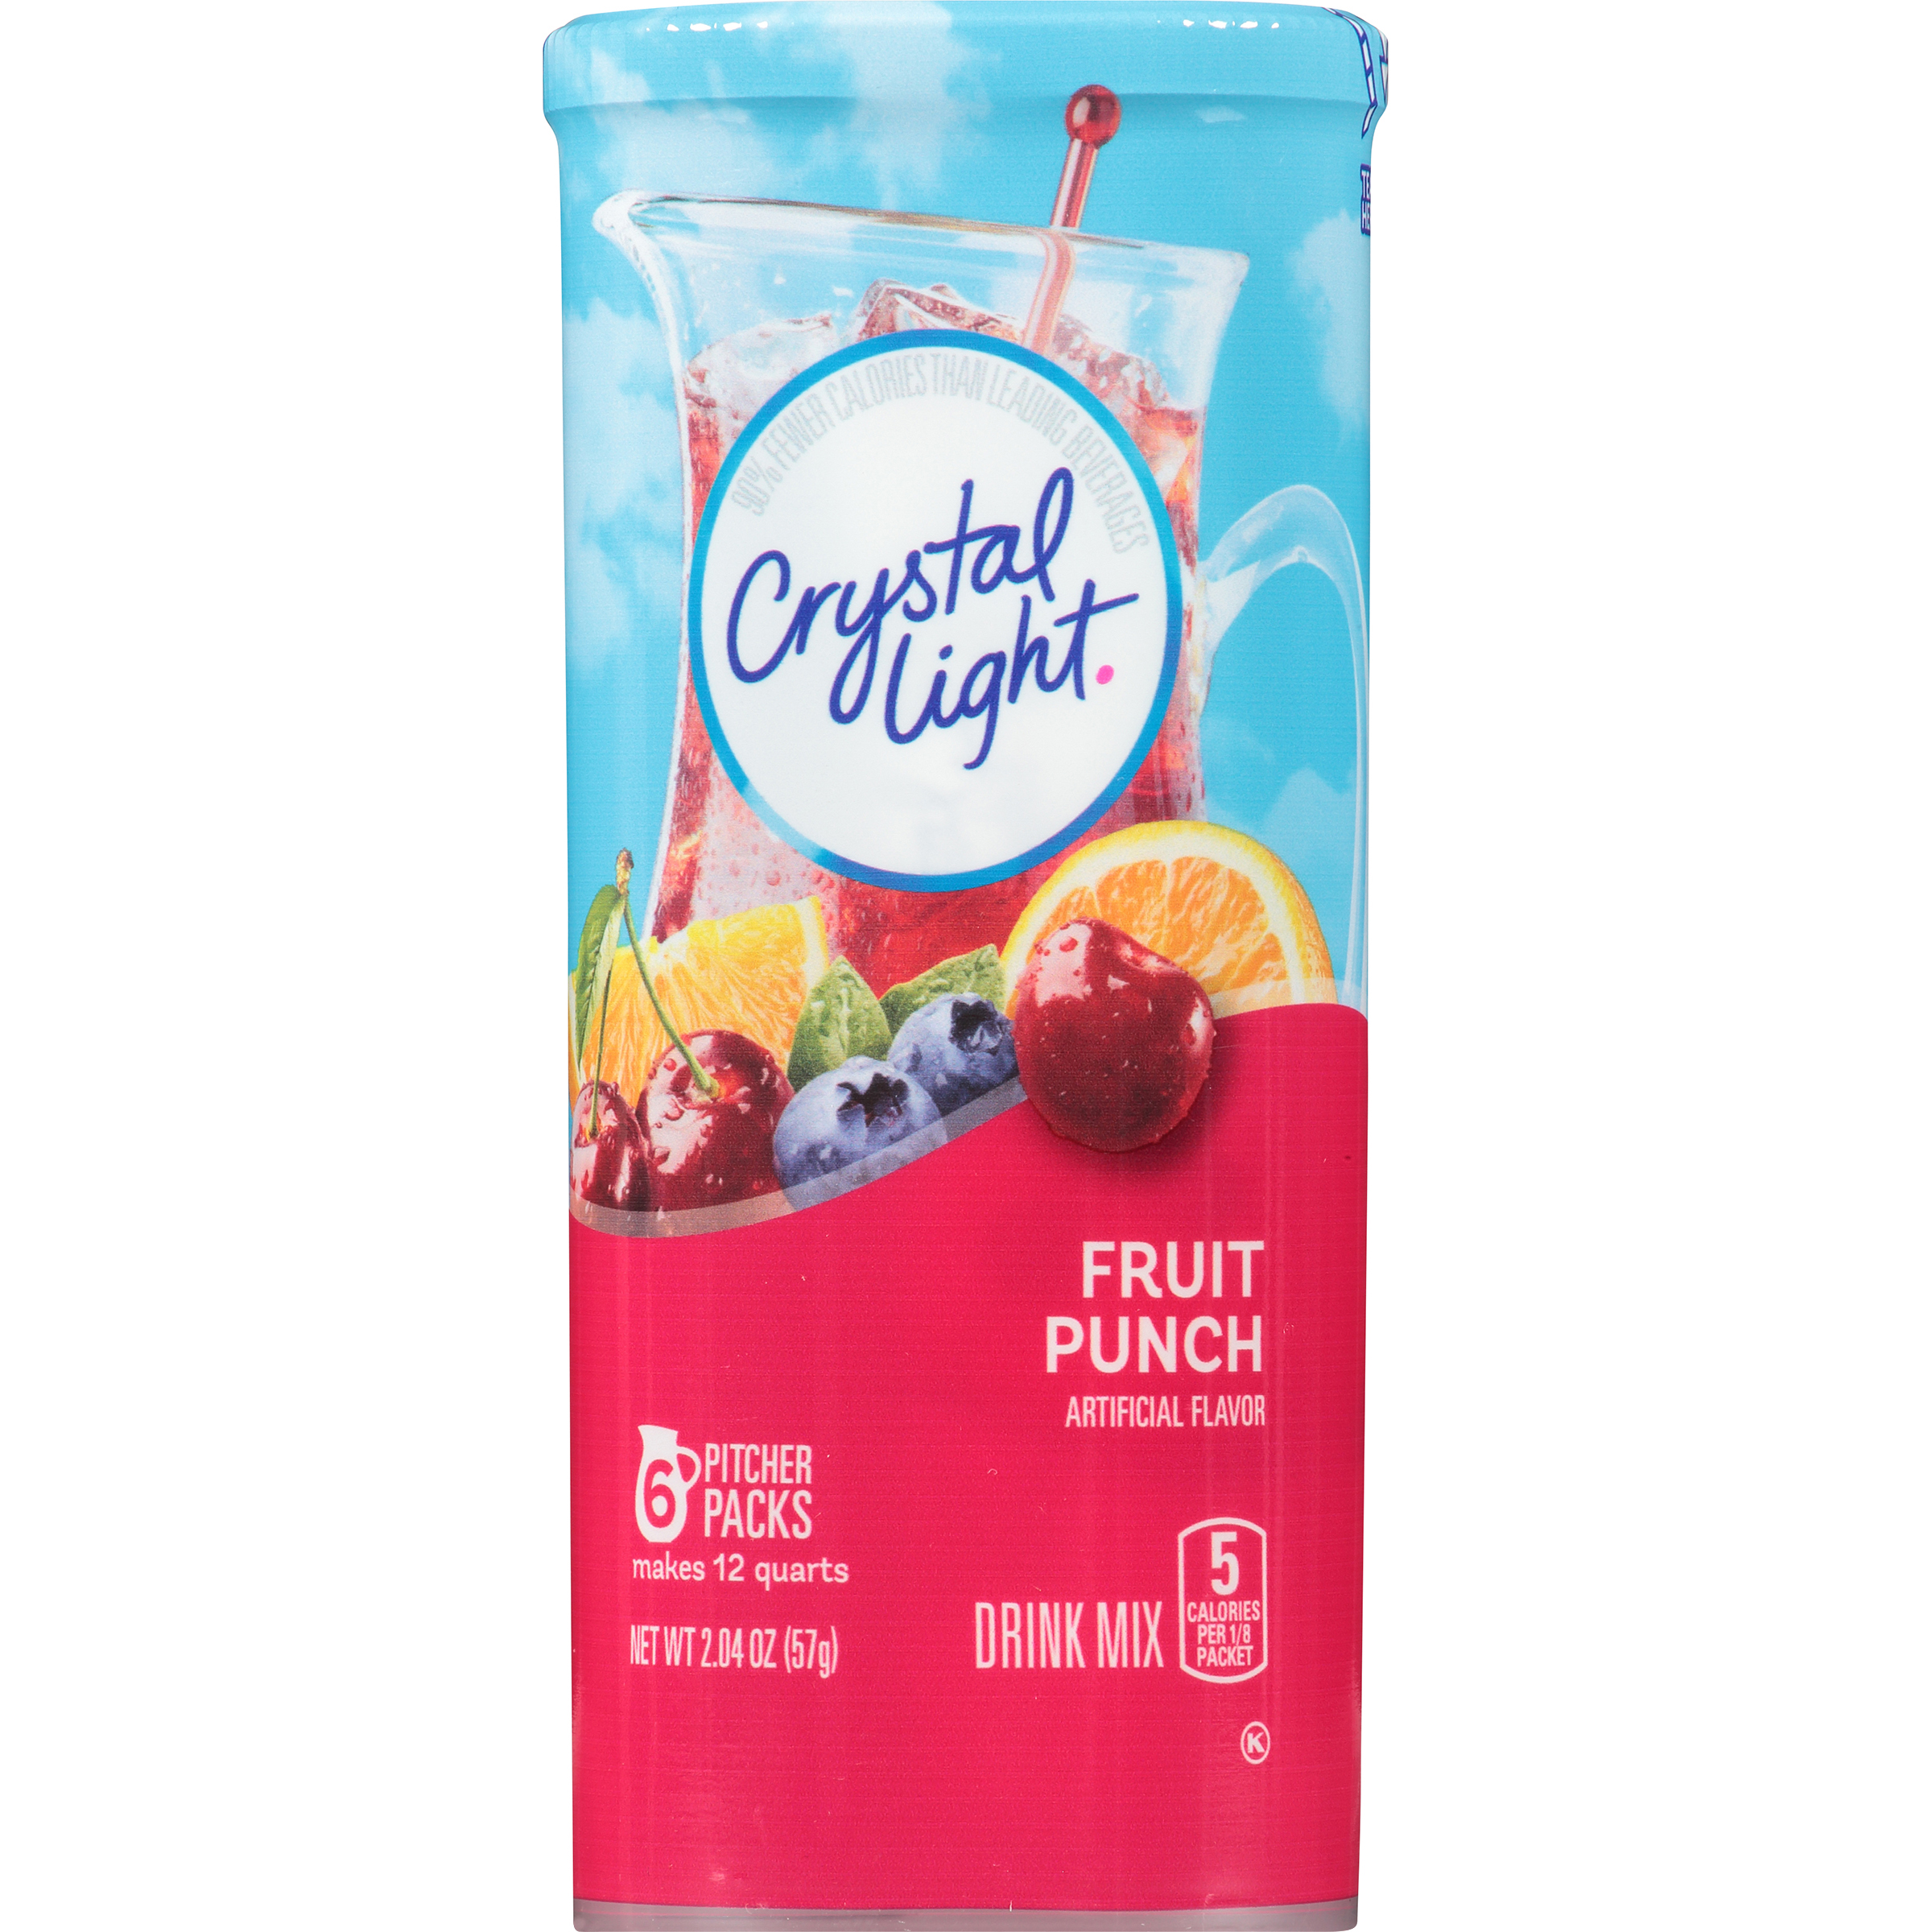 Crystal Light Drink Mix, Fruit Punch, 2.04 Oz, 6 Packets, 1 Count